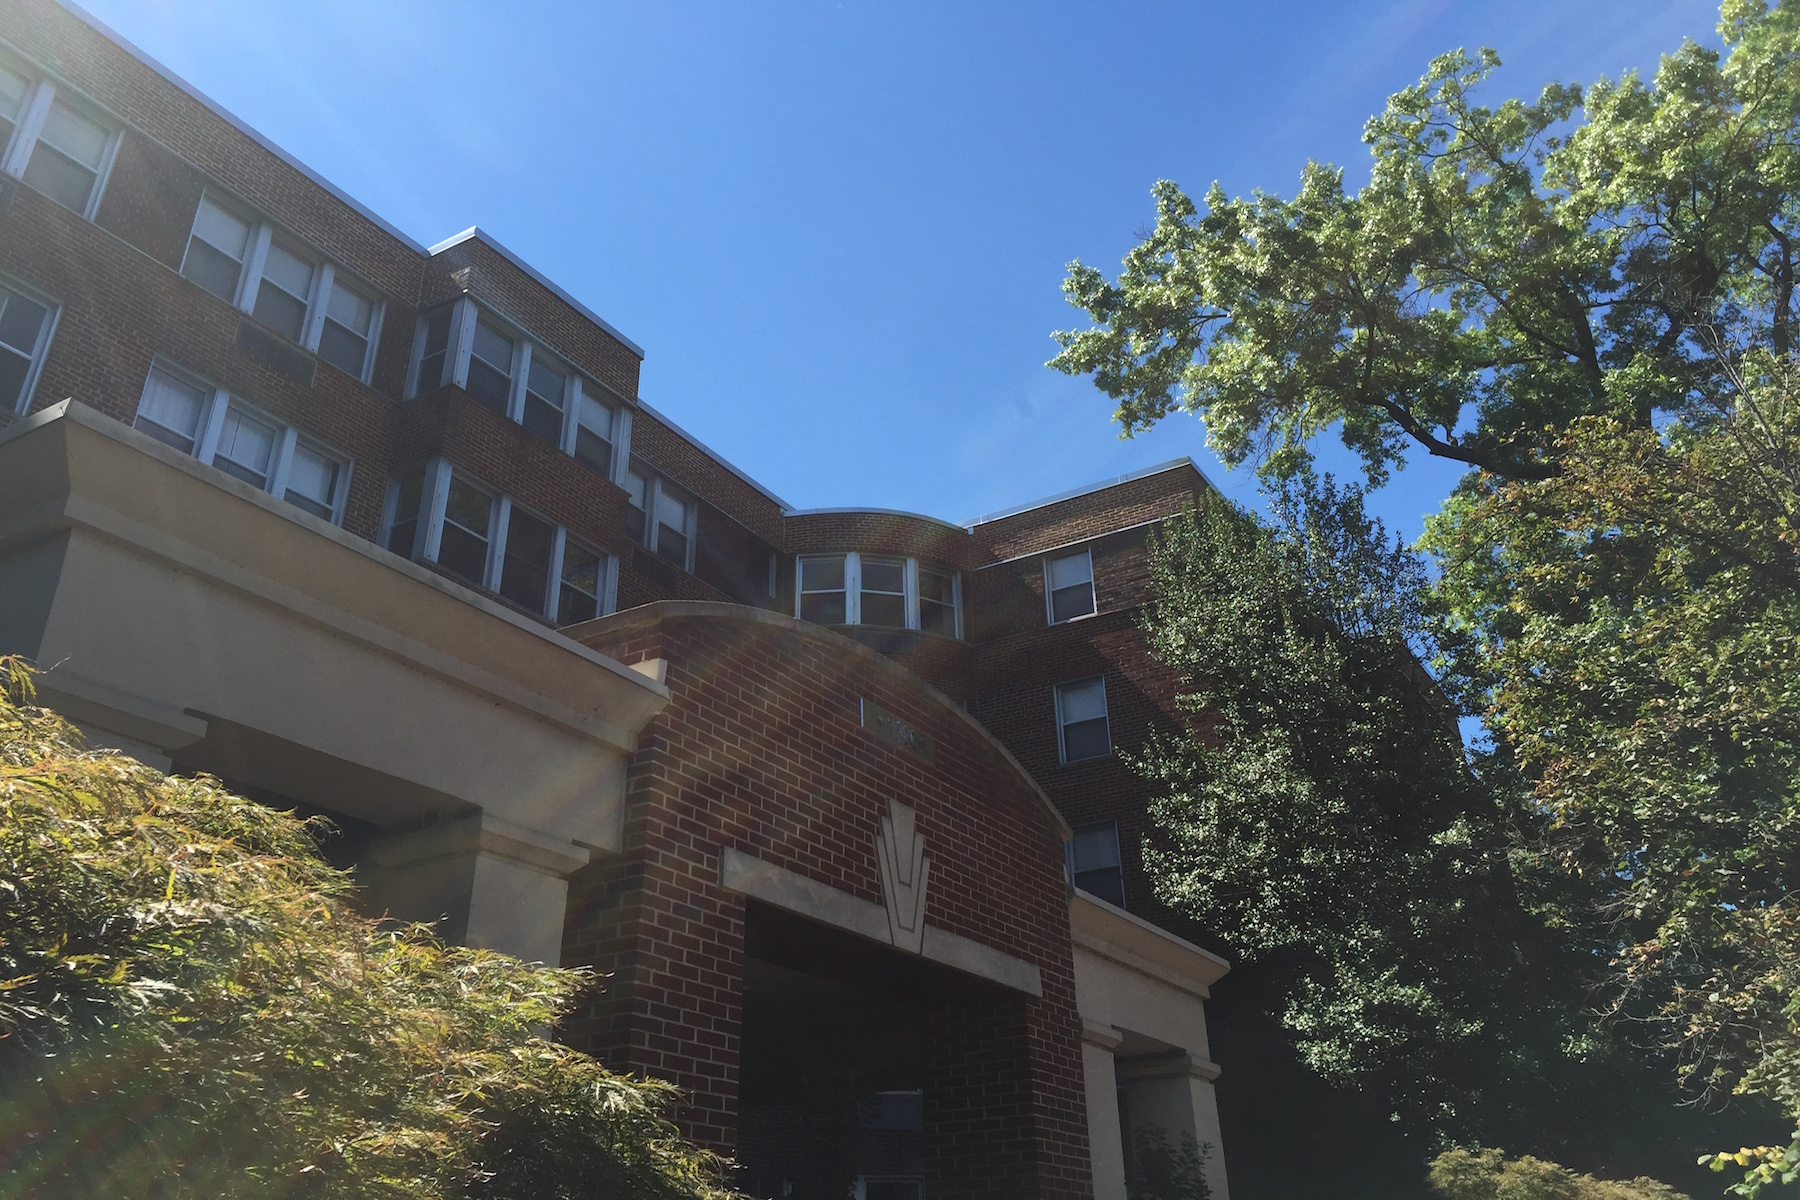 Appartement voor Huren een t Spacious Updated 2BD Condo w Garage in Georgetown 2500 Q Street Nw 533 Washington, District Of Columbia 20007 Verenigde Staten